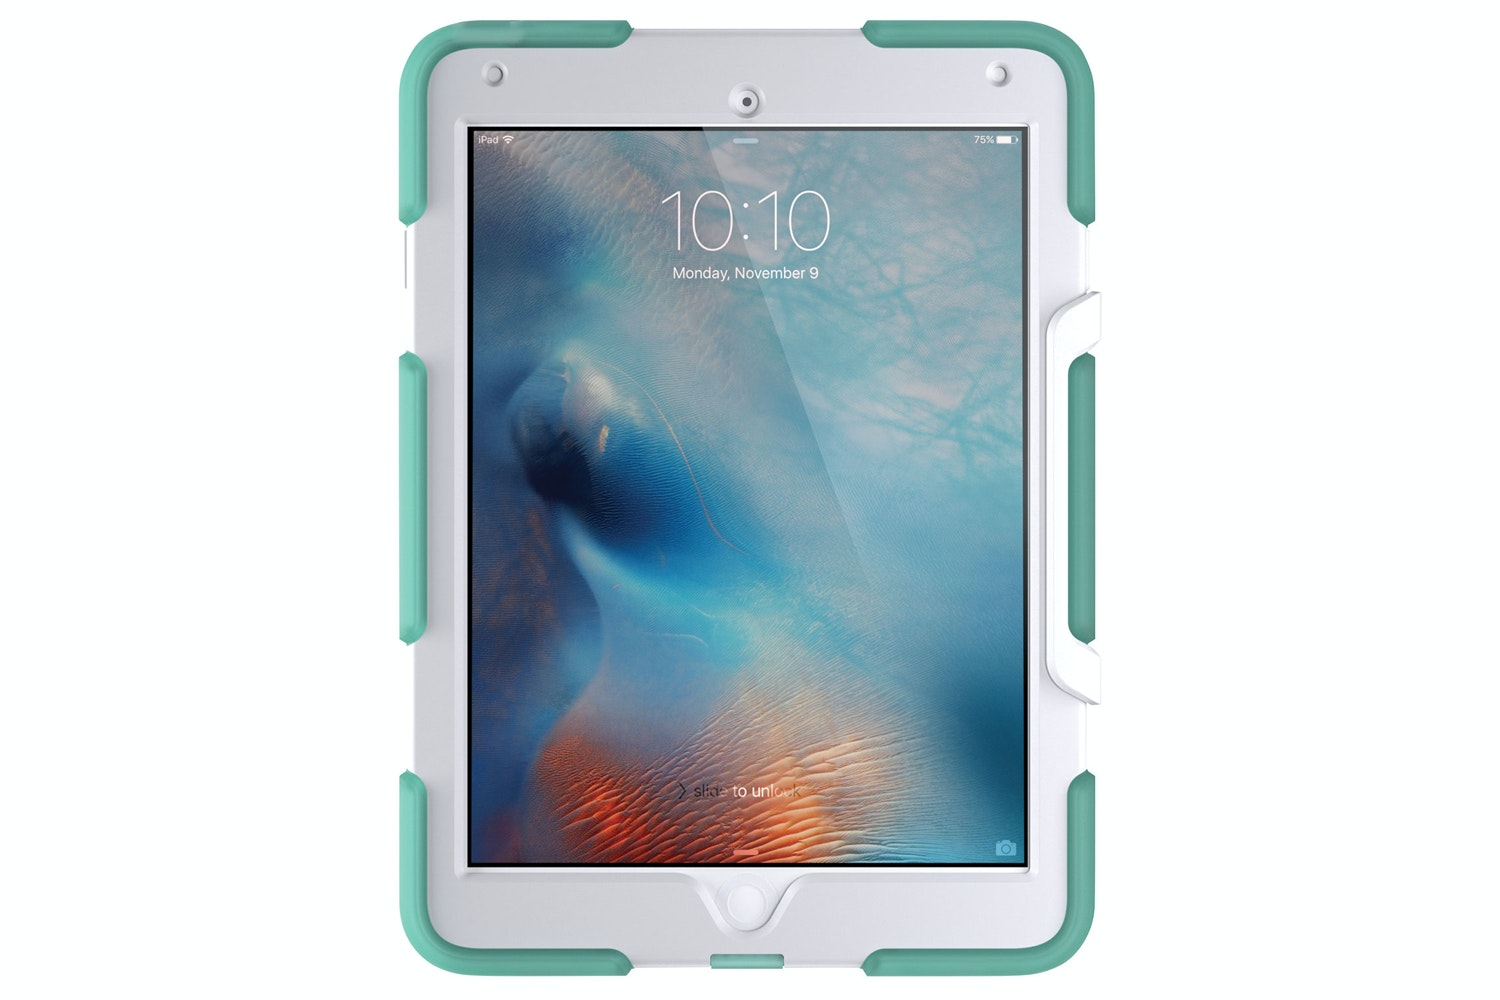 Griffin Survivor Terrain Case | iPad Air 2 & Pro 9.7